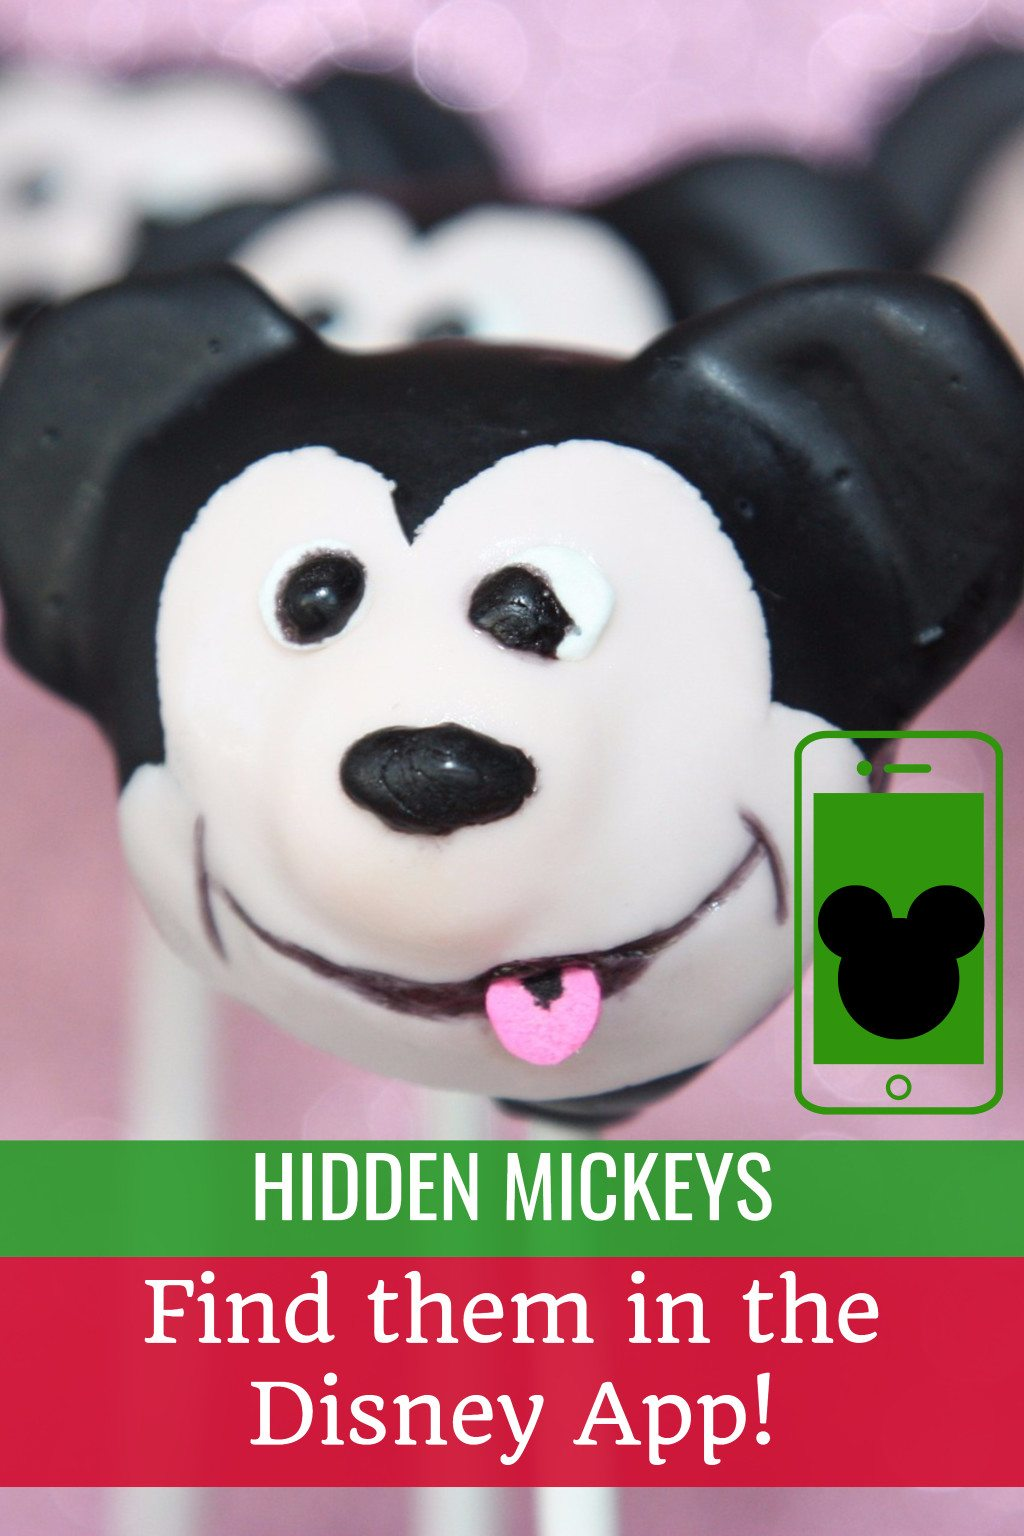 We've been hidden mickey hunting inside the Disney App for Walt Disney World Florida - can you find them too?